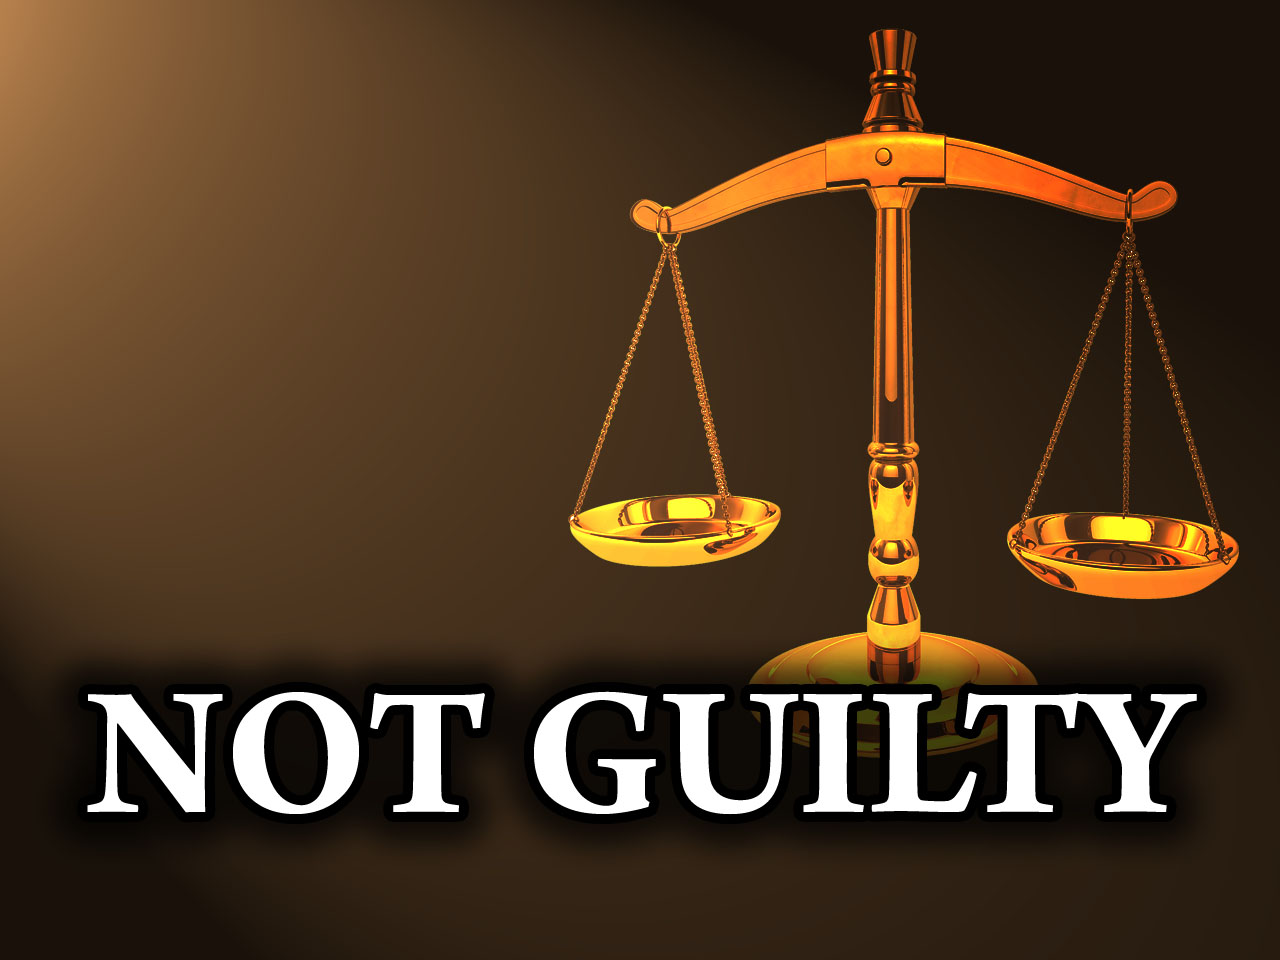 Not Guilty of DWI